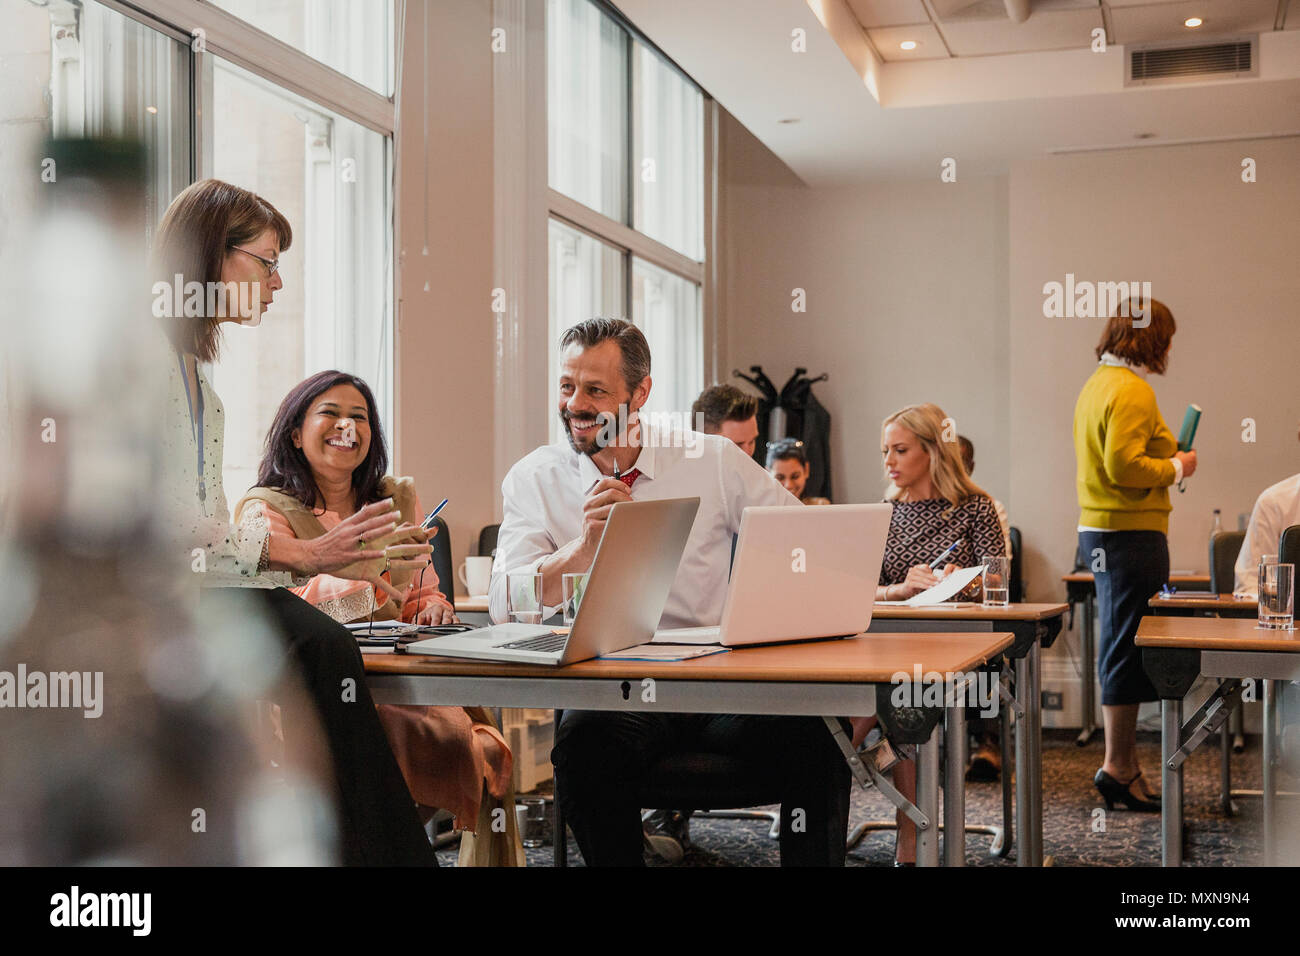 Co-workers talking and discussion information from the laptops. Having a meeting during a lunchbreak from the business conference. - Stock Image